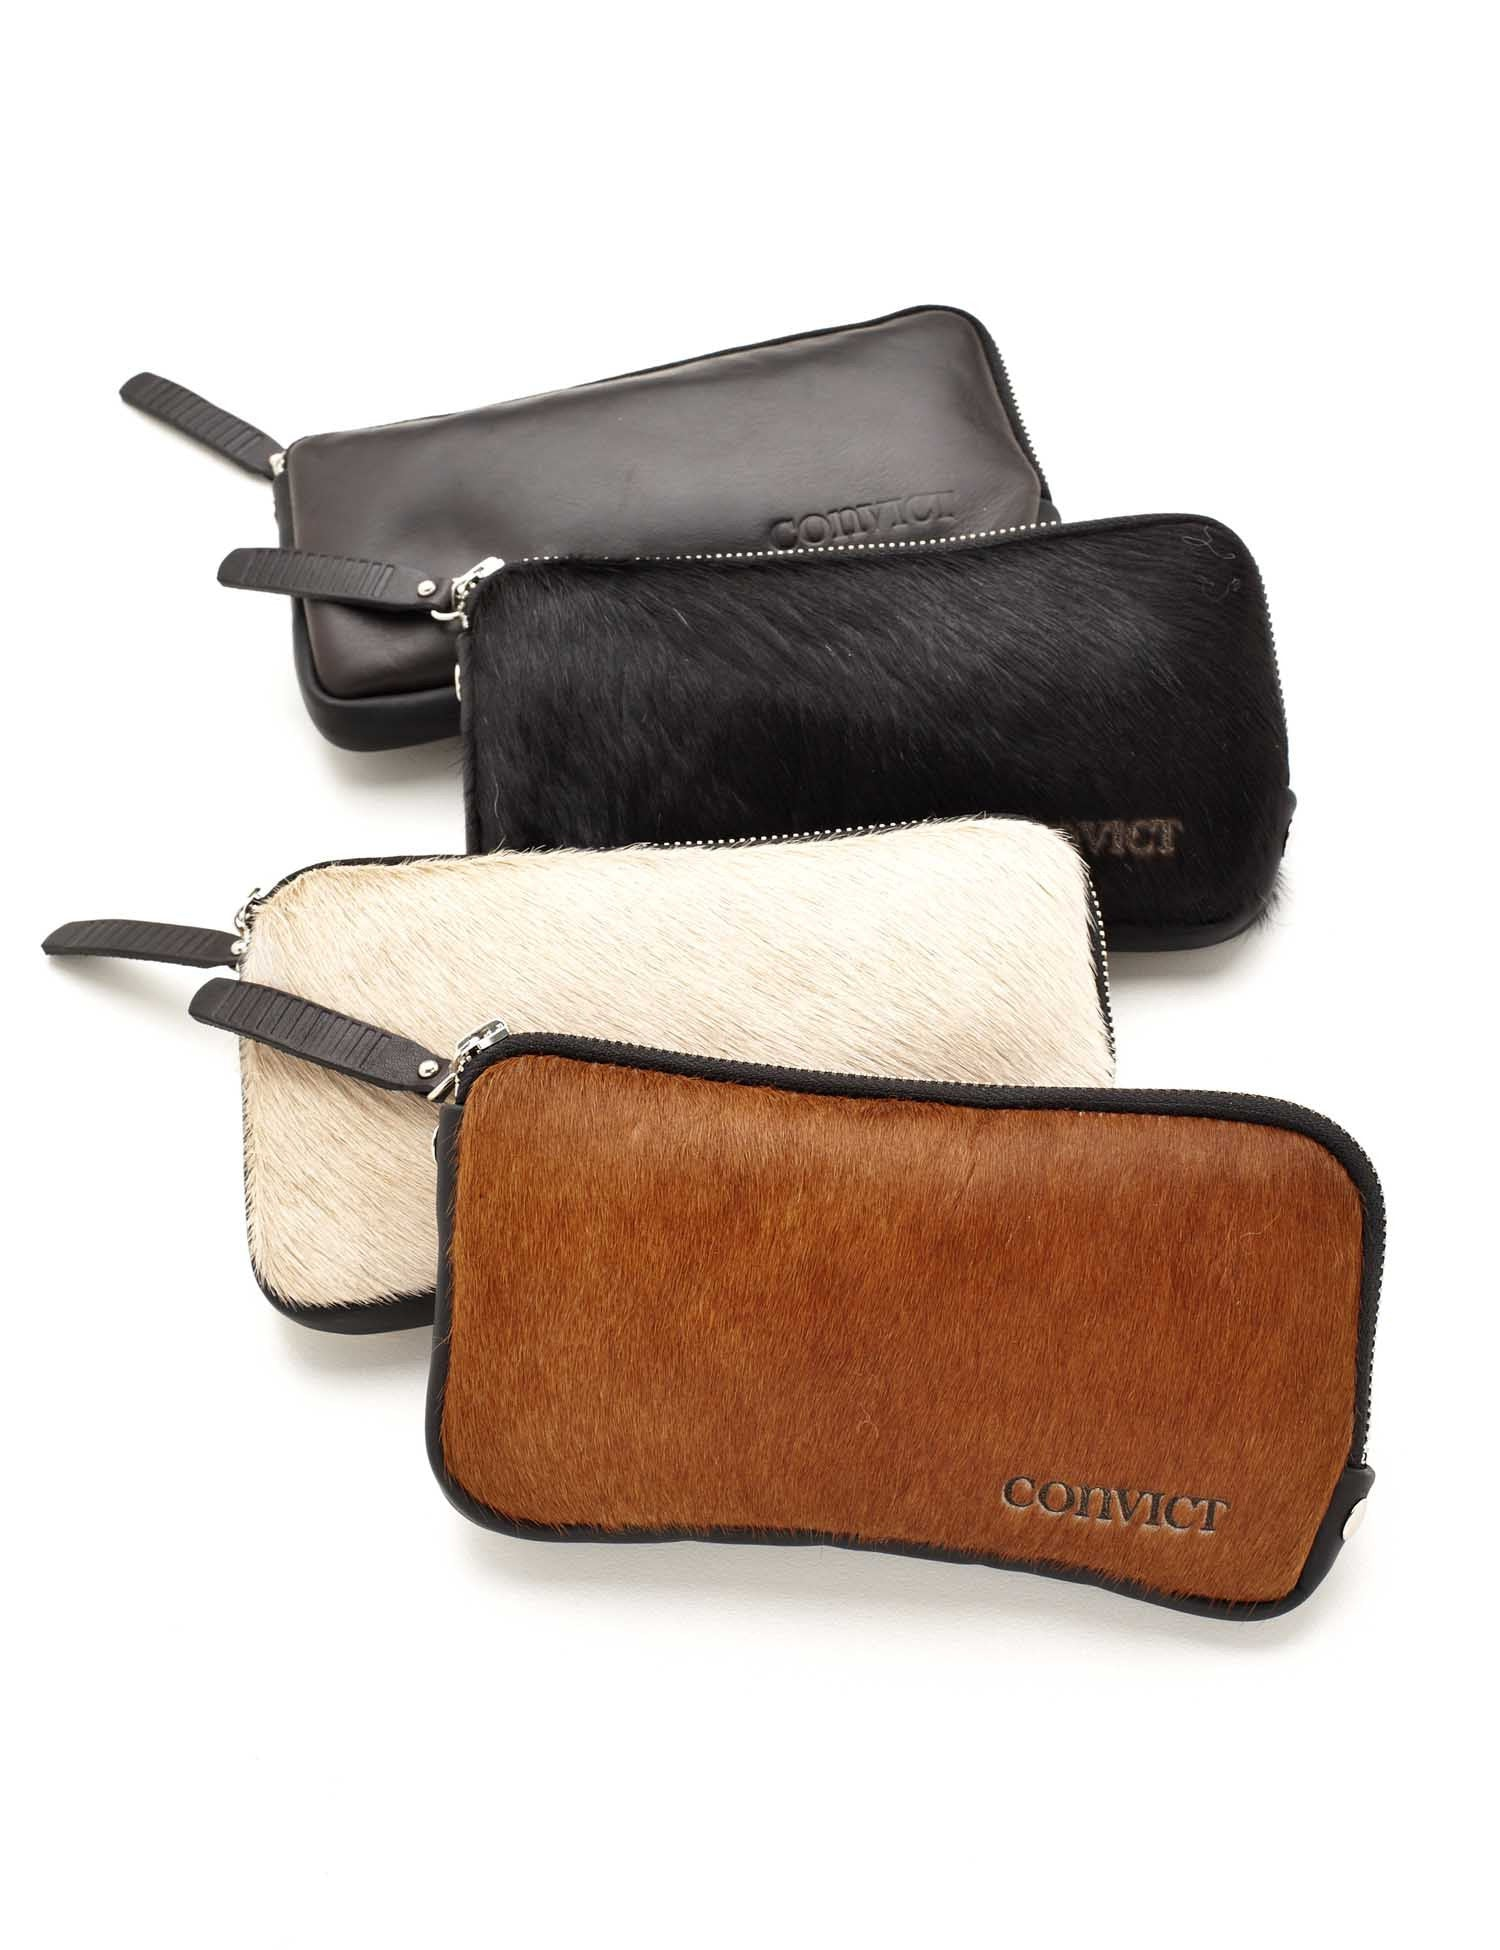 Convict brown cowhide womens wallet